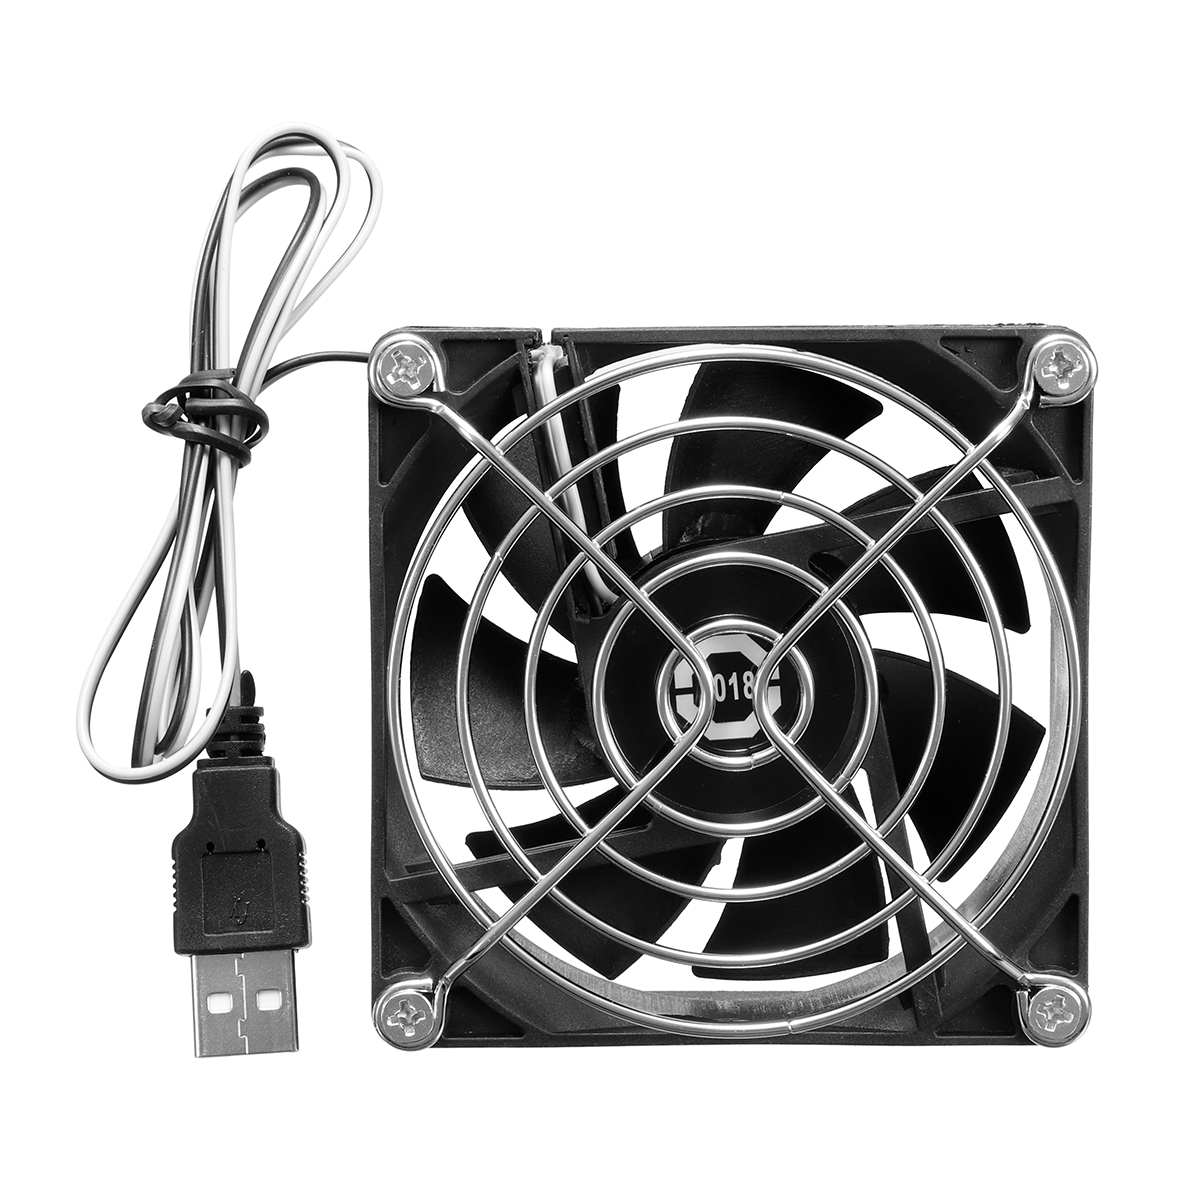 8cm USB Cooling Fan Heatsink for PC Computer TV Box for